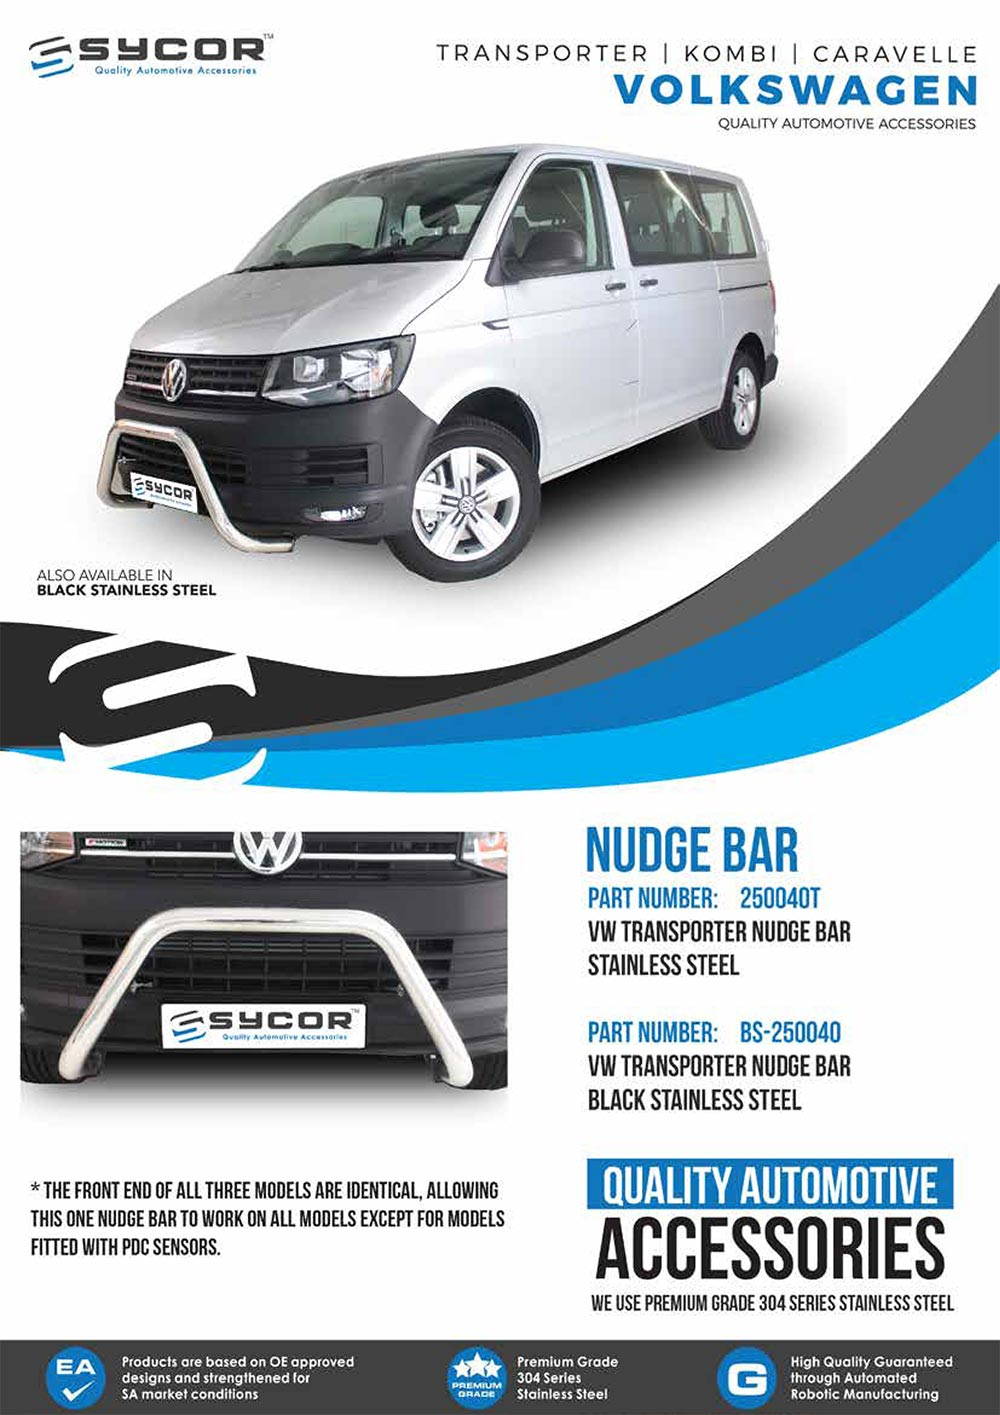 VOLKSWAGEN TRANSPORTED NUDGE BAR